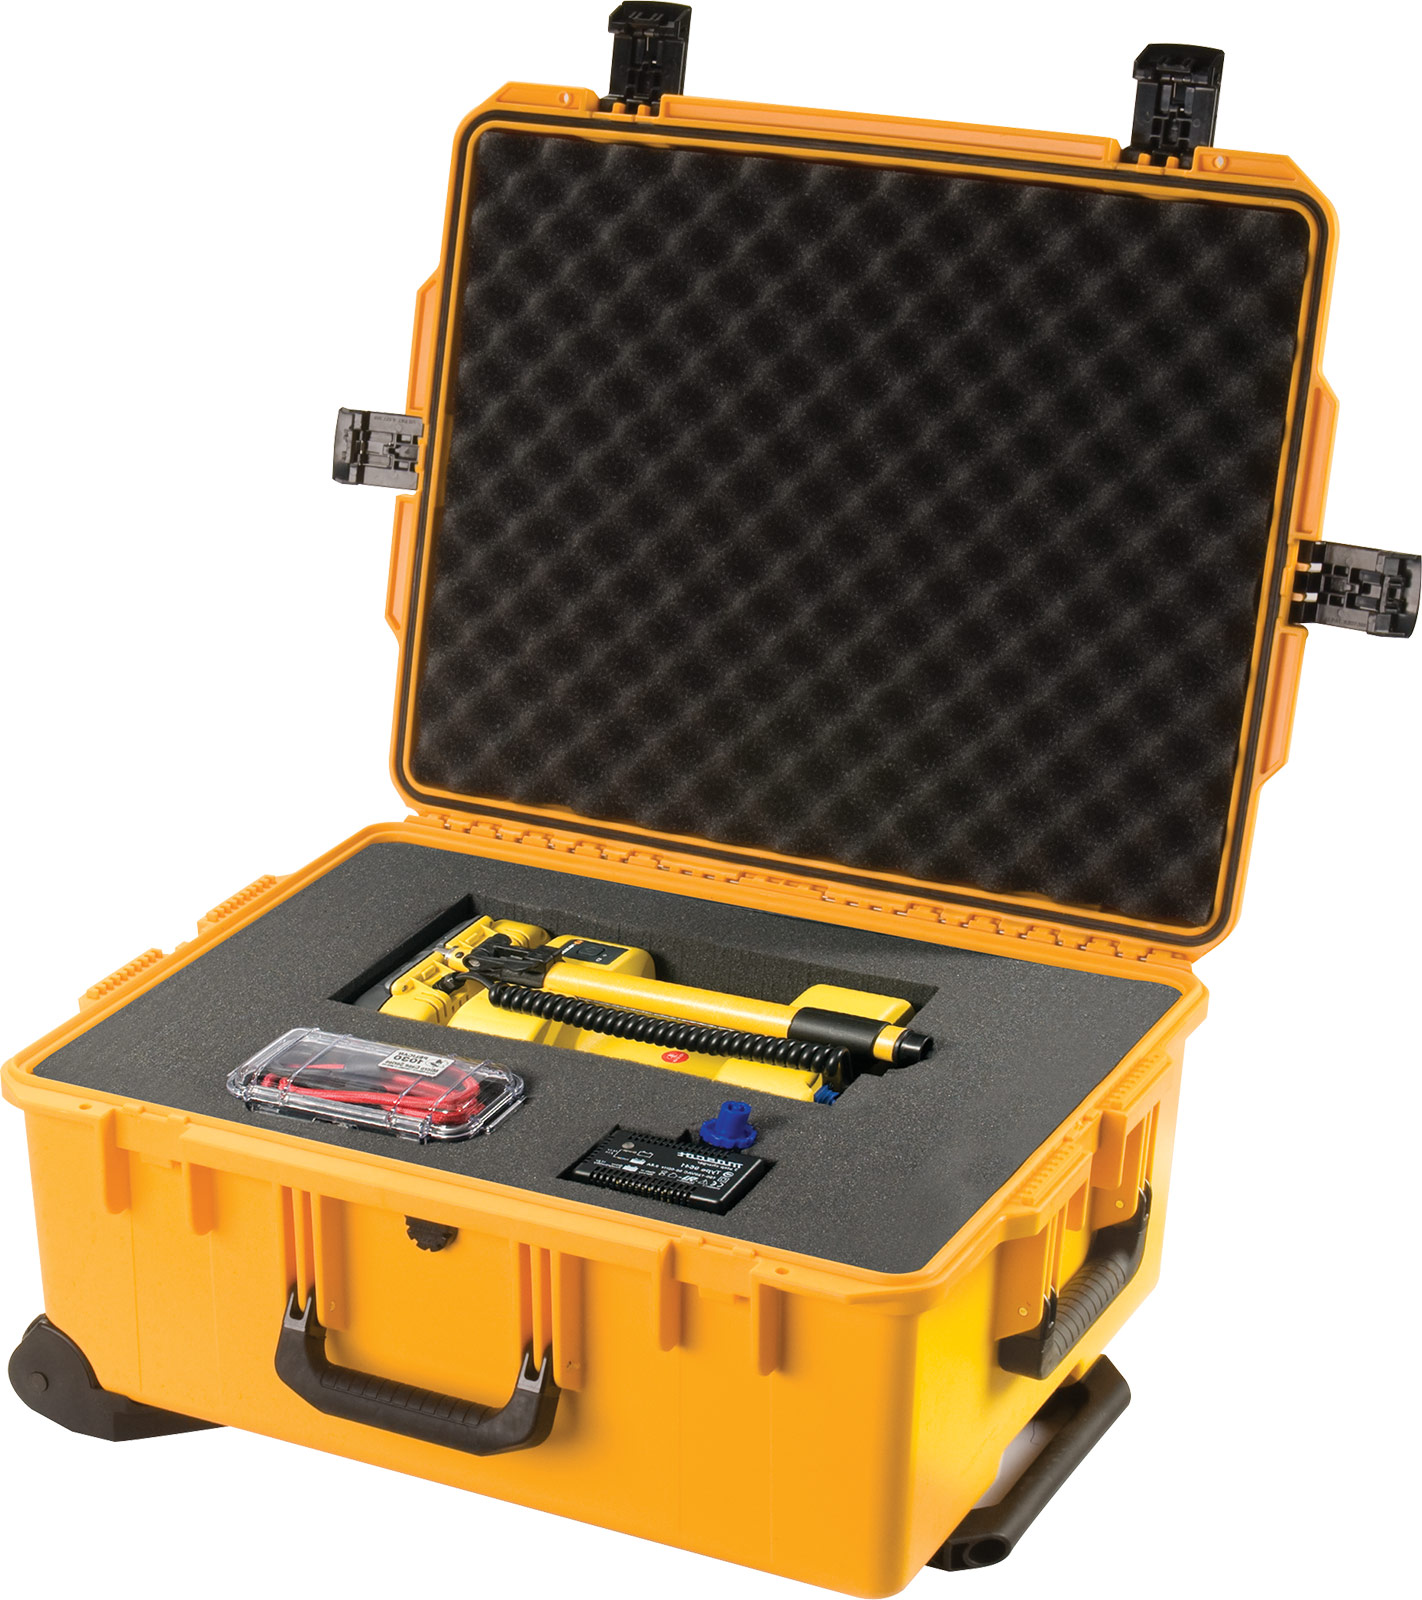 pelican im2720 storm industrial safety light case